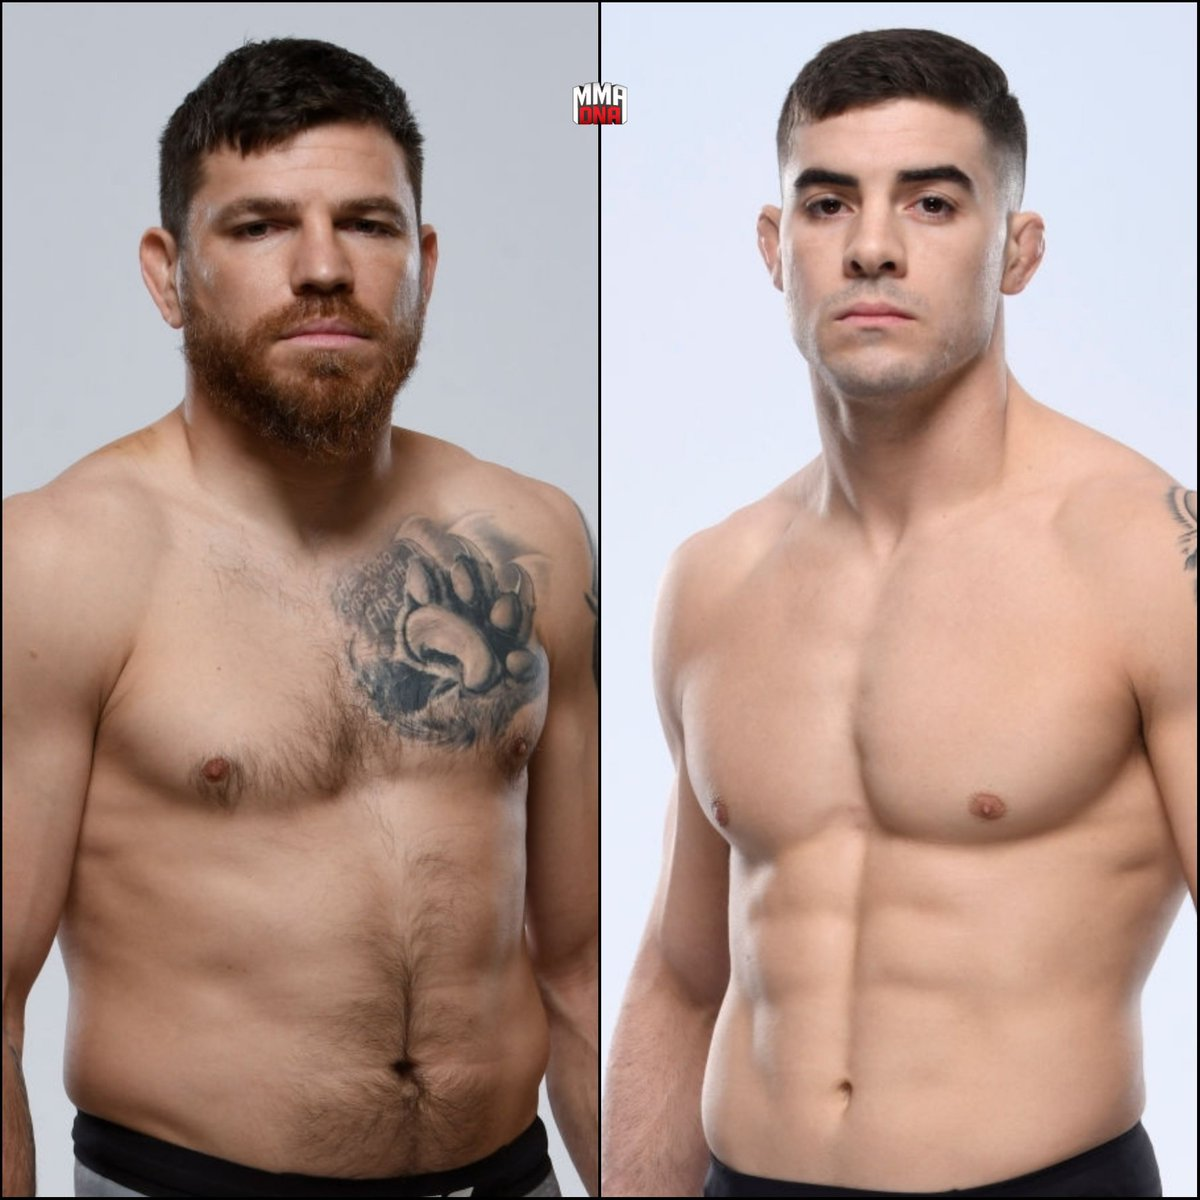 Jim Miller will fight Joe Solecki at UFC event on April 10th. (per @Farah_Hannoun) #UFC #MMA #UFCESPN